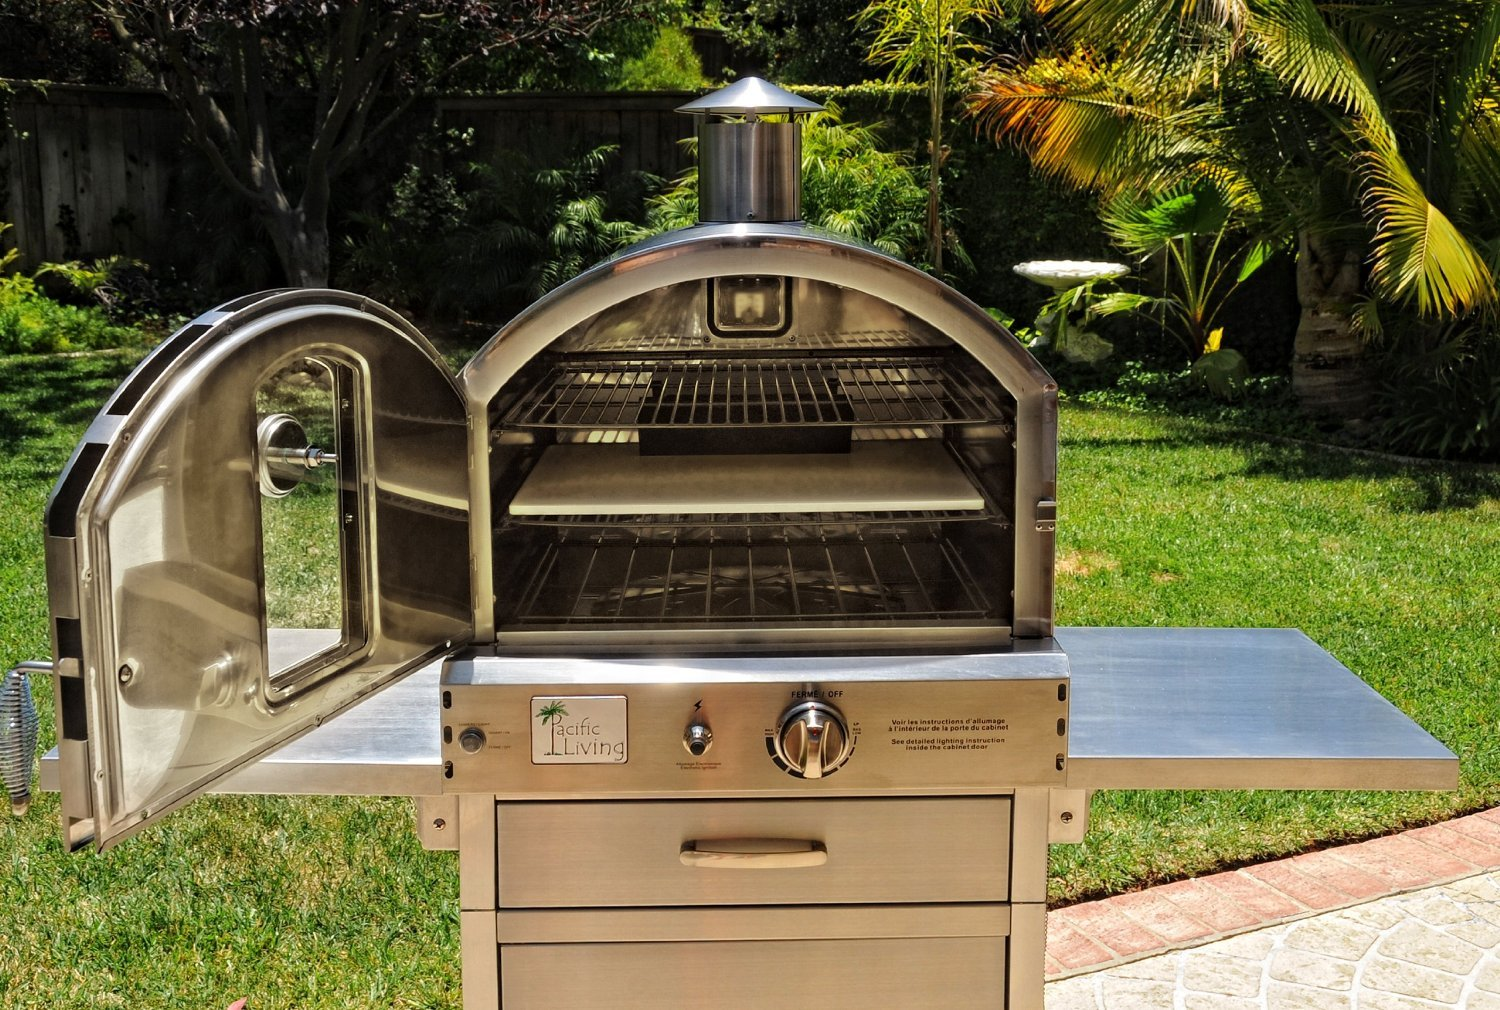 amazoncom pacific living outdoor large capacity gas oven with pizza stone smoker box and mobile cart 430 stainless steel grills garden